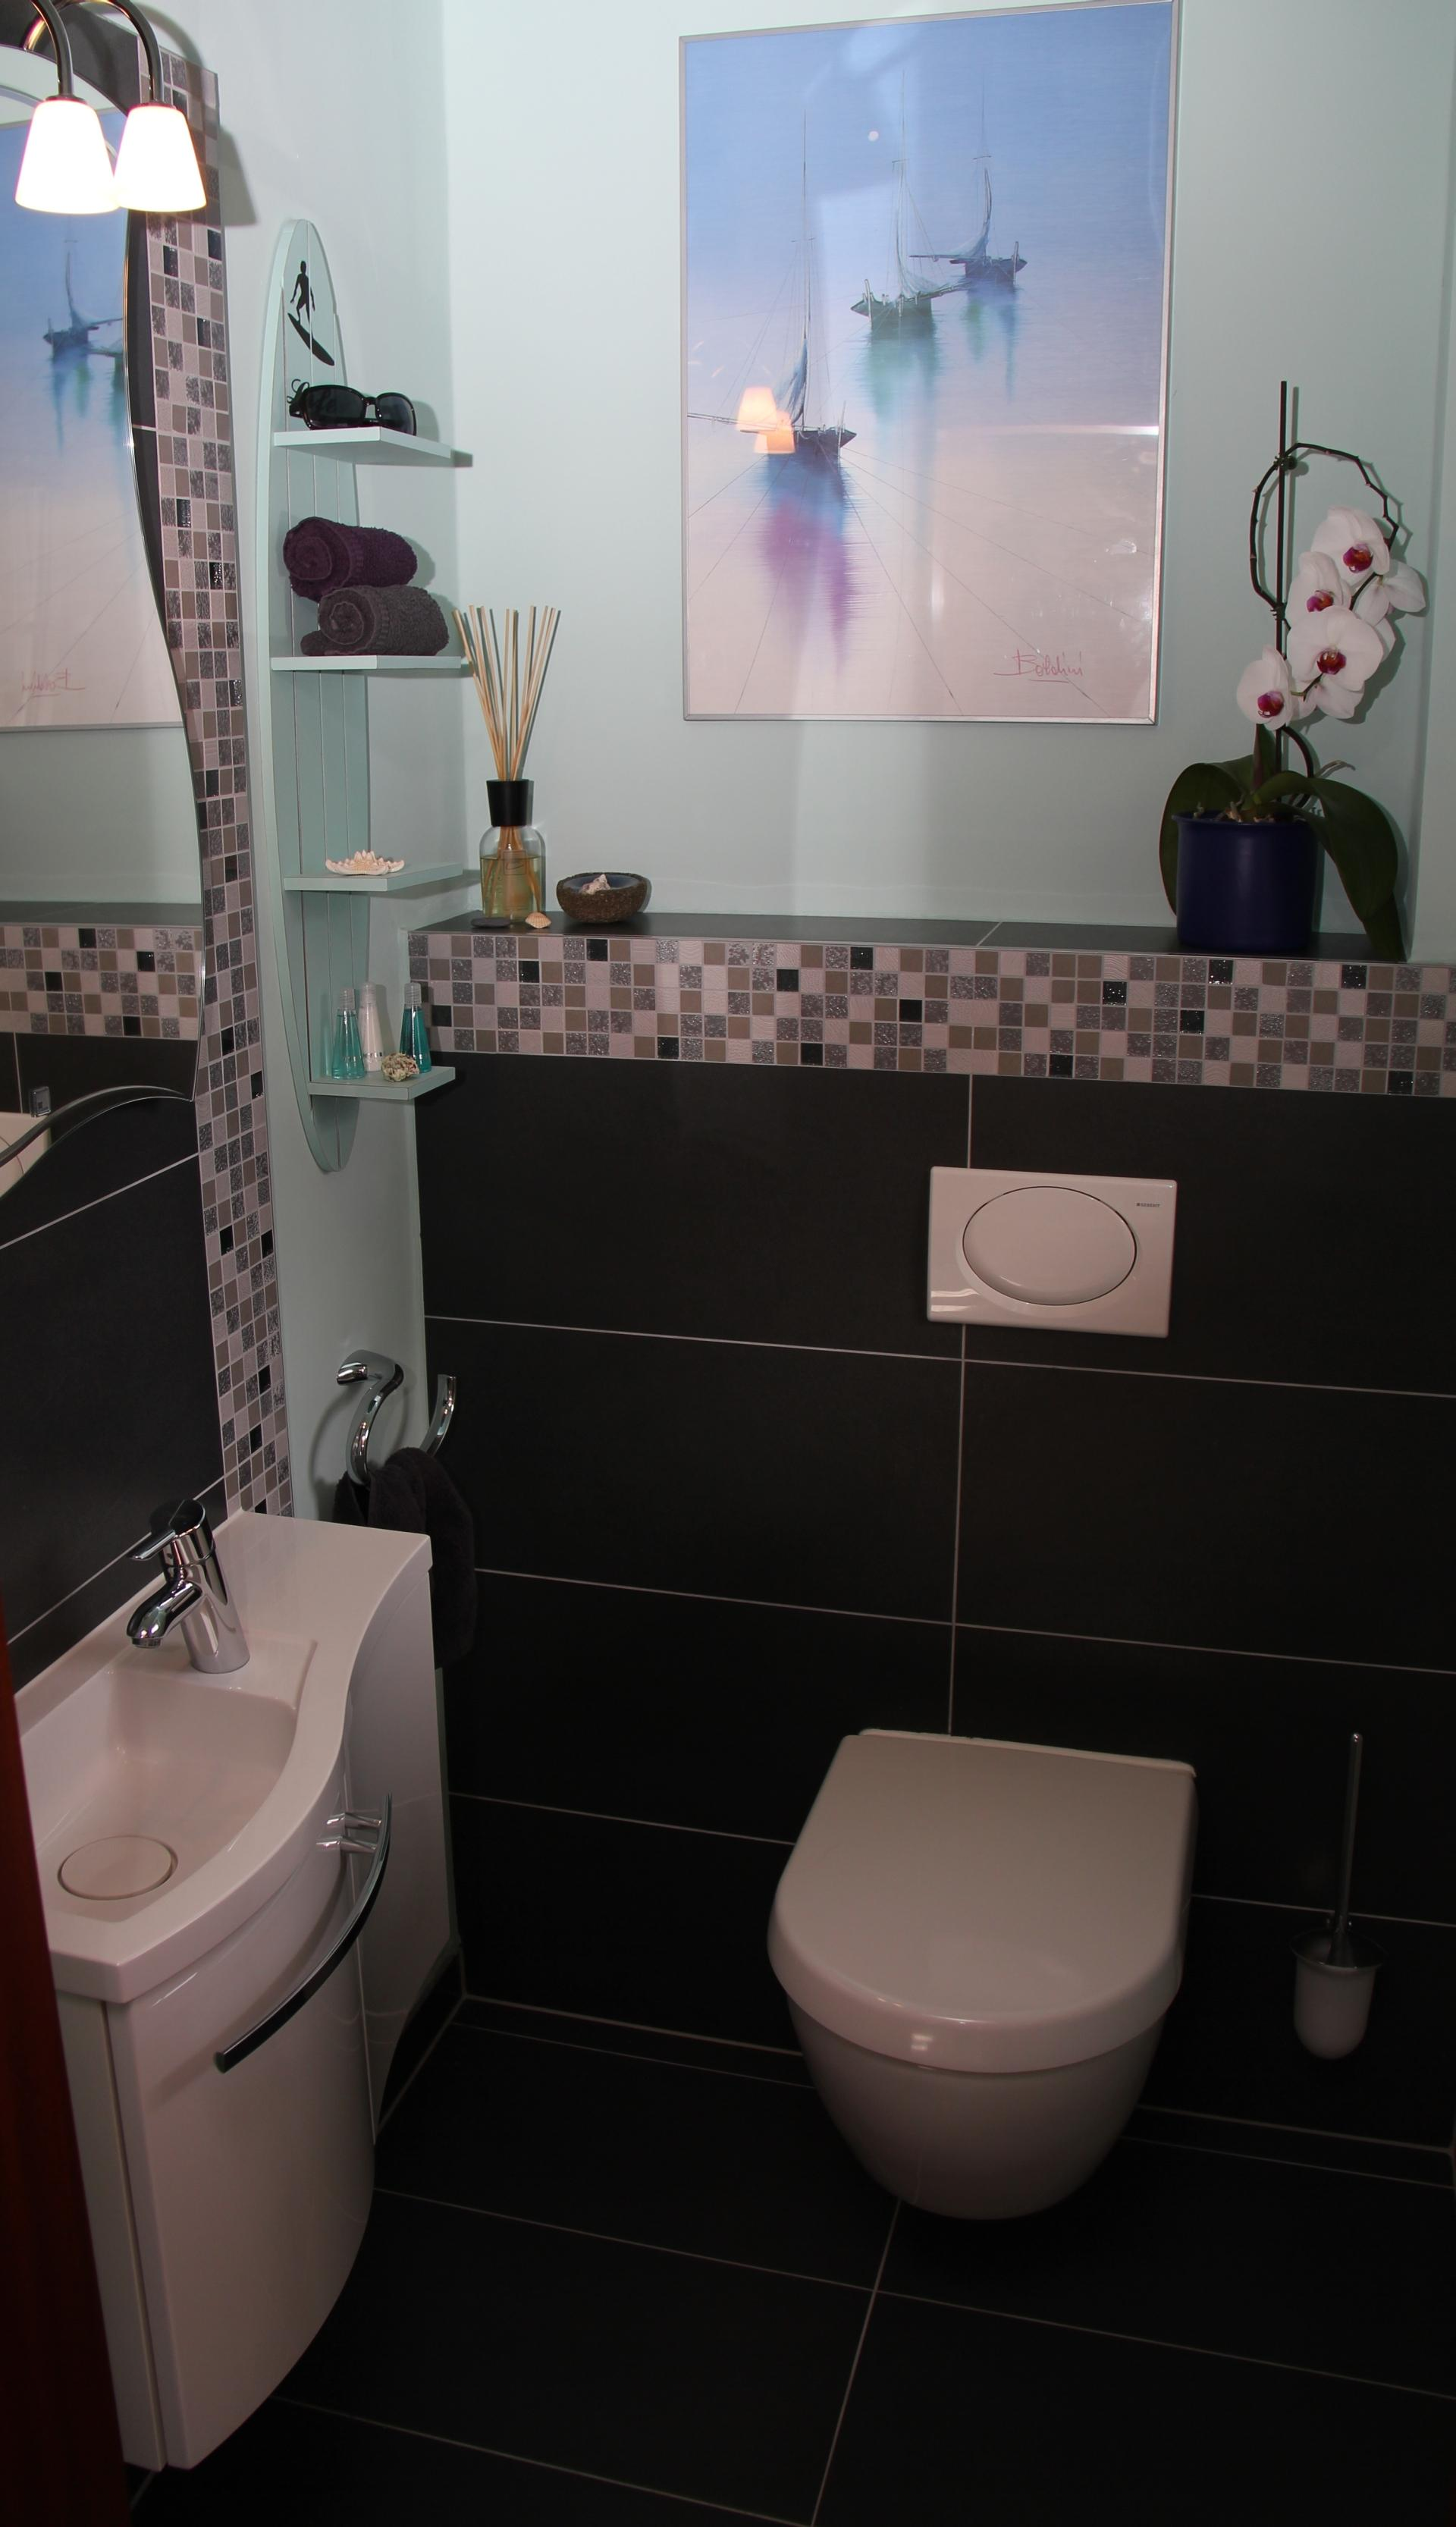 Gäste-WC in maritimer Optik #bad #mosaikfliesen #maritim #gästewc ©FENG SHUI & LIVING